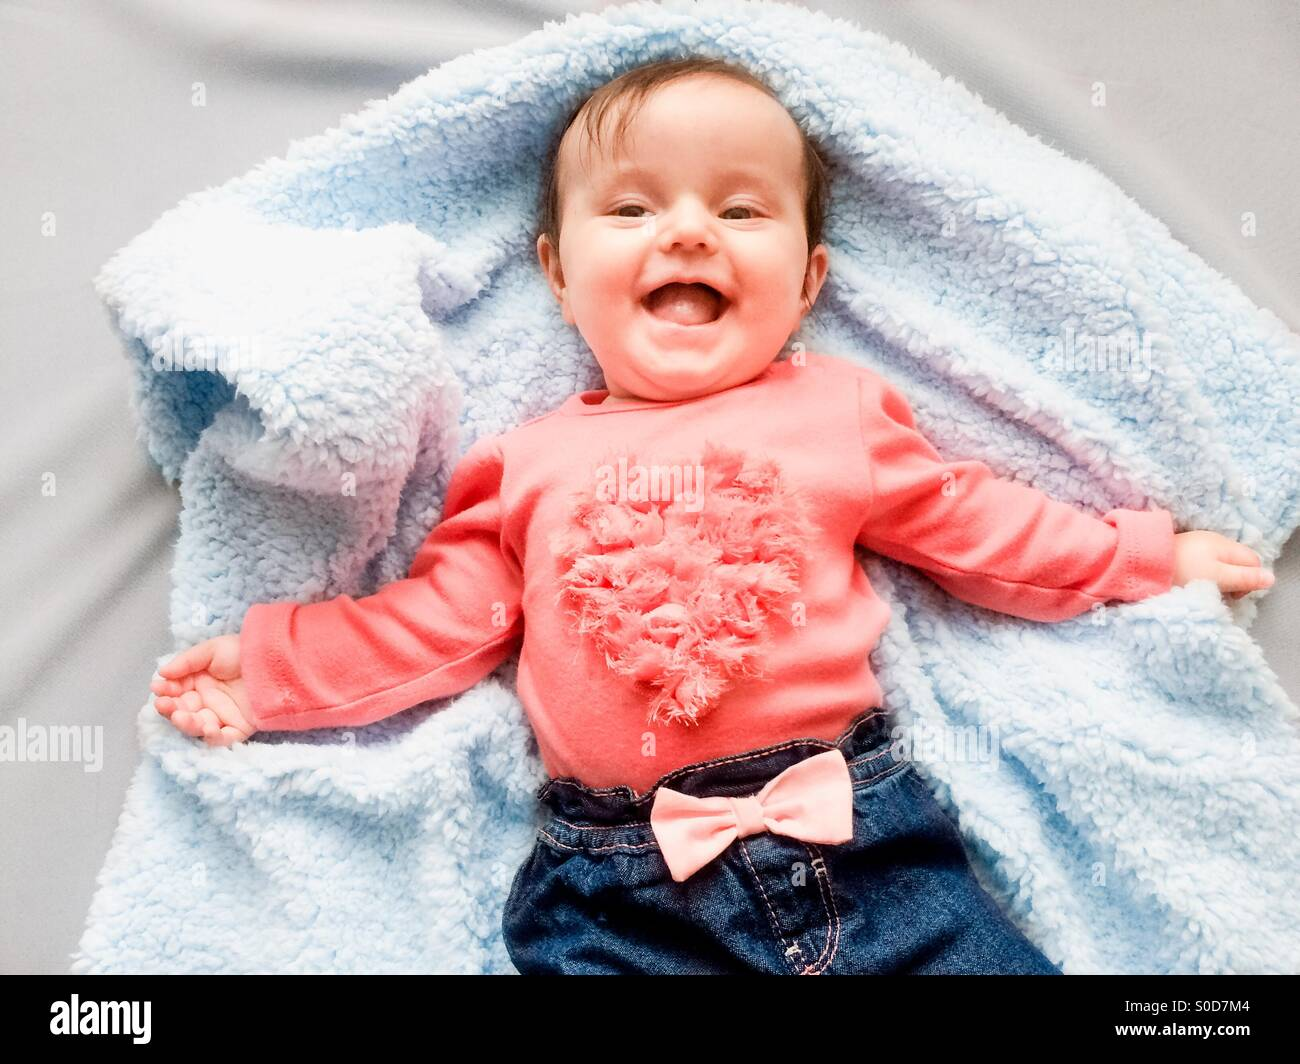 Happy smiling baby girl lying on blanket. She is wearing top with heart shape and blue jeans with bow tie. - Stock Image